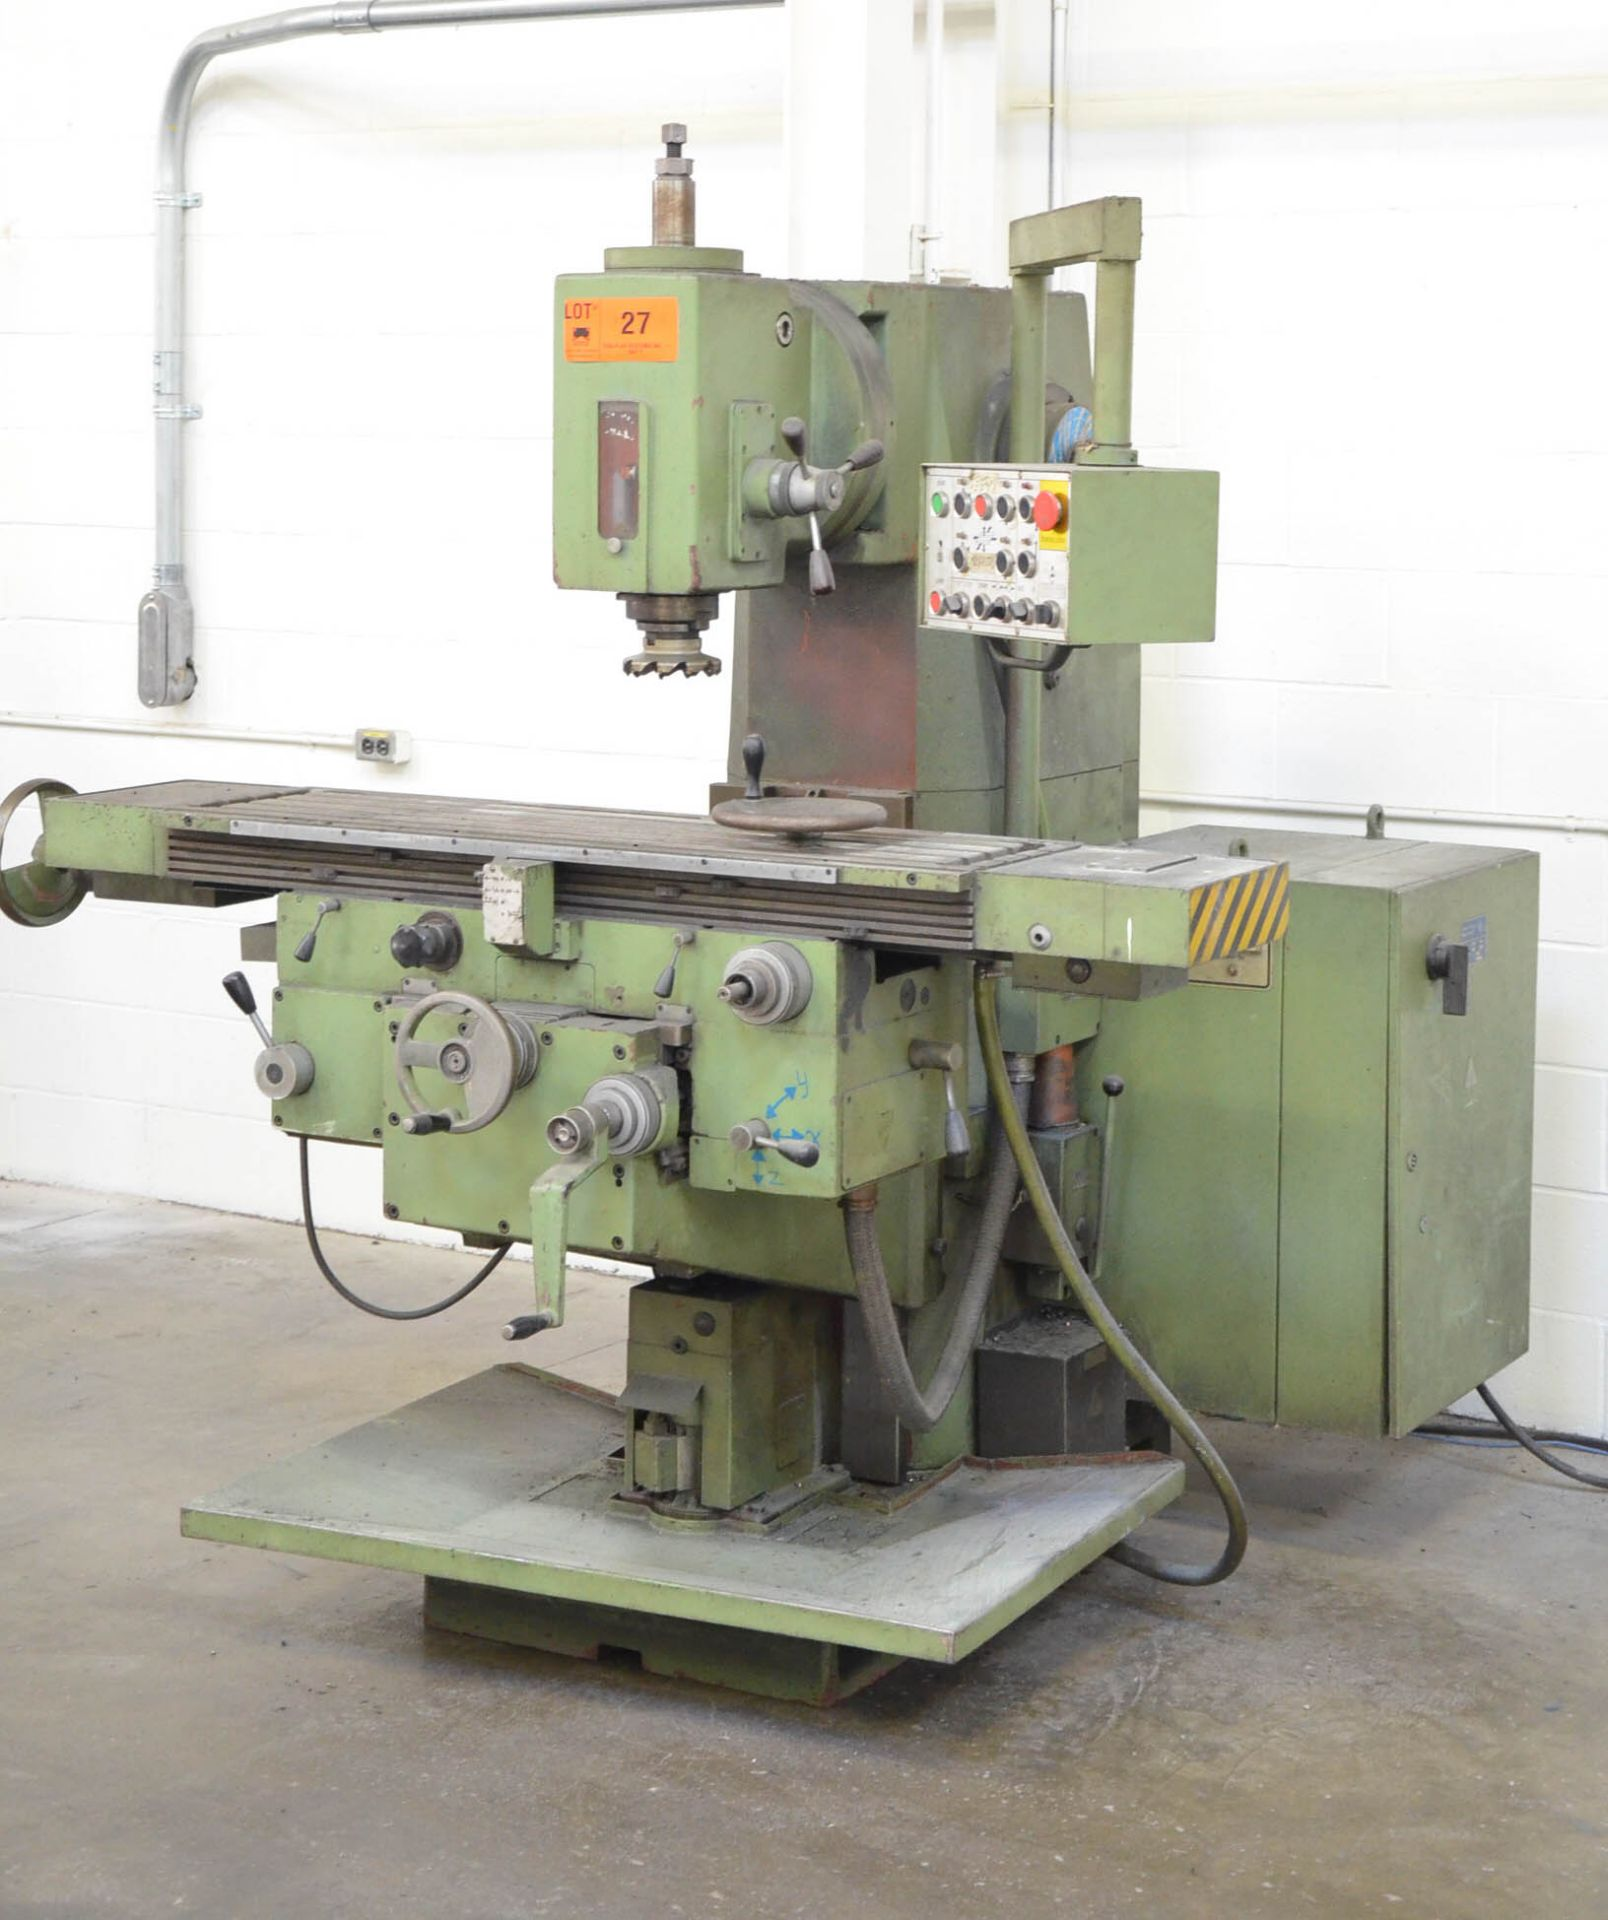 """TOS UNIVERSAL MILLING MACHINE WITH 12""""X50"""" TABLE, SPEEDS TO 1,750 RPM, #50 SPINDLE TAPER, PUSH"""